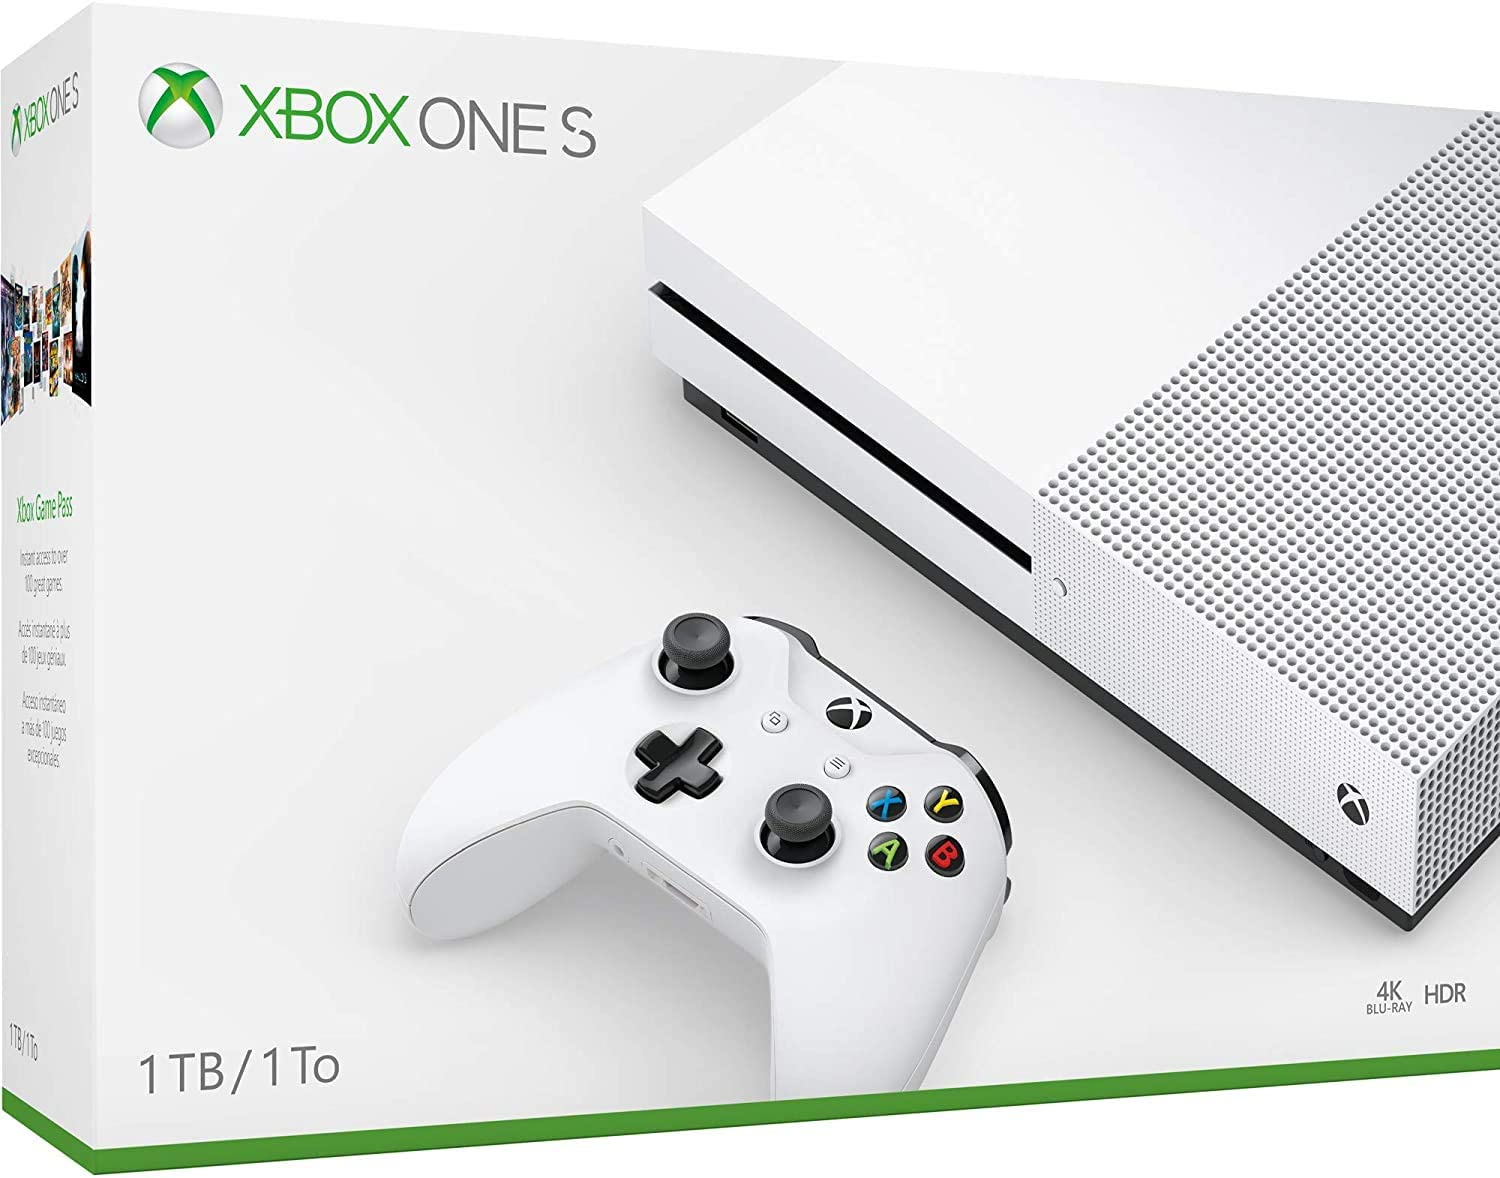 Xbox One S Boxed